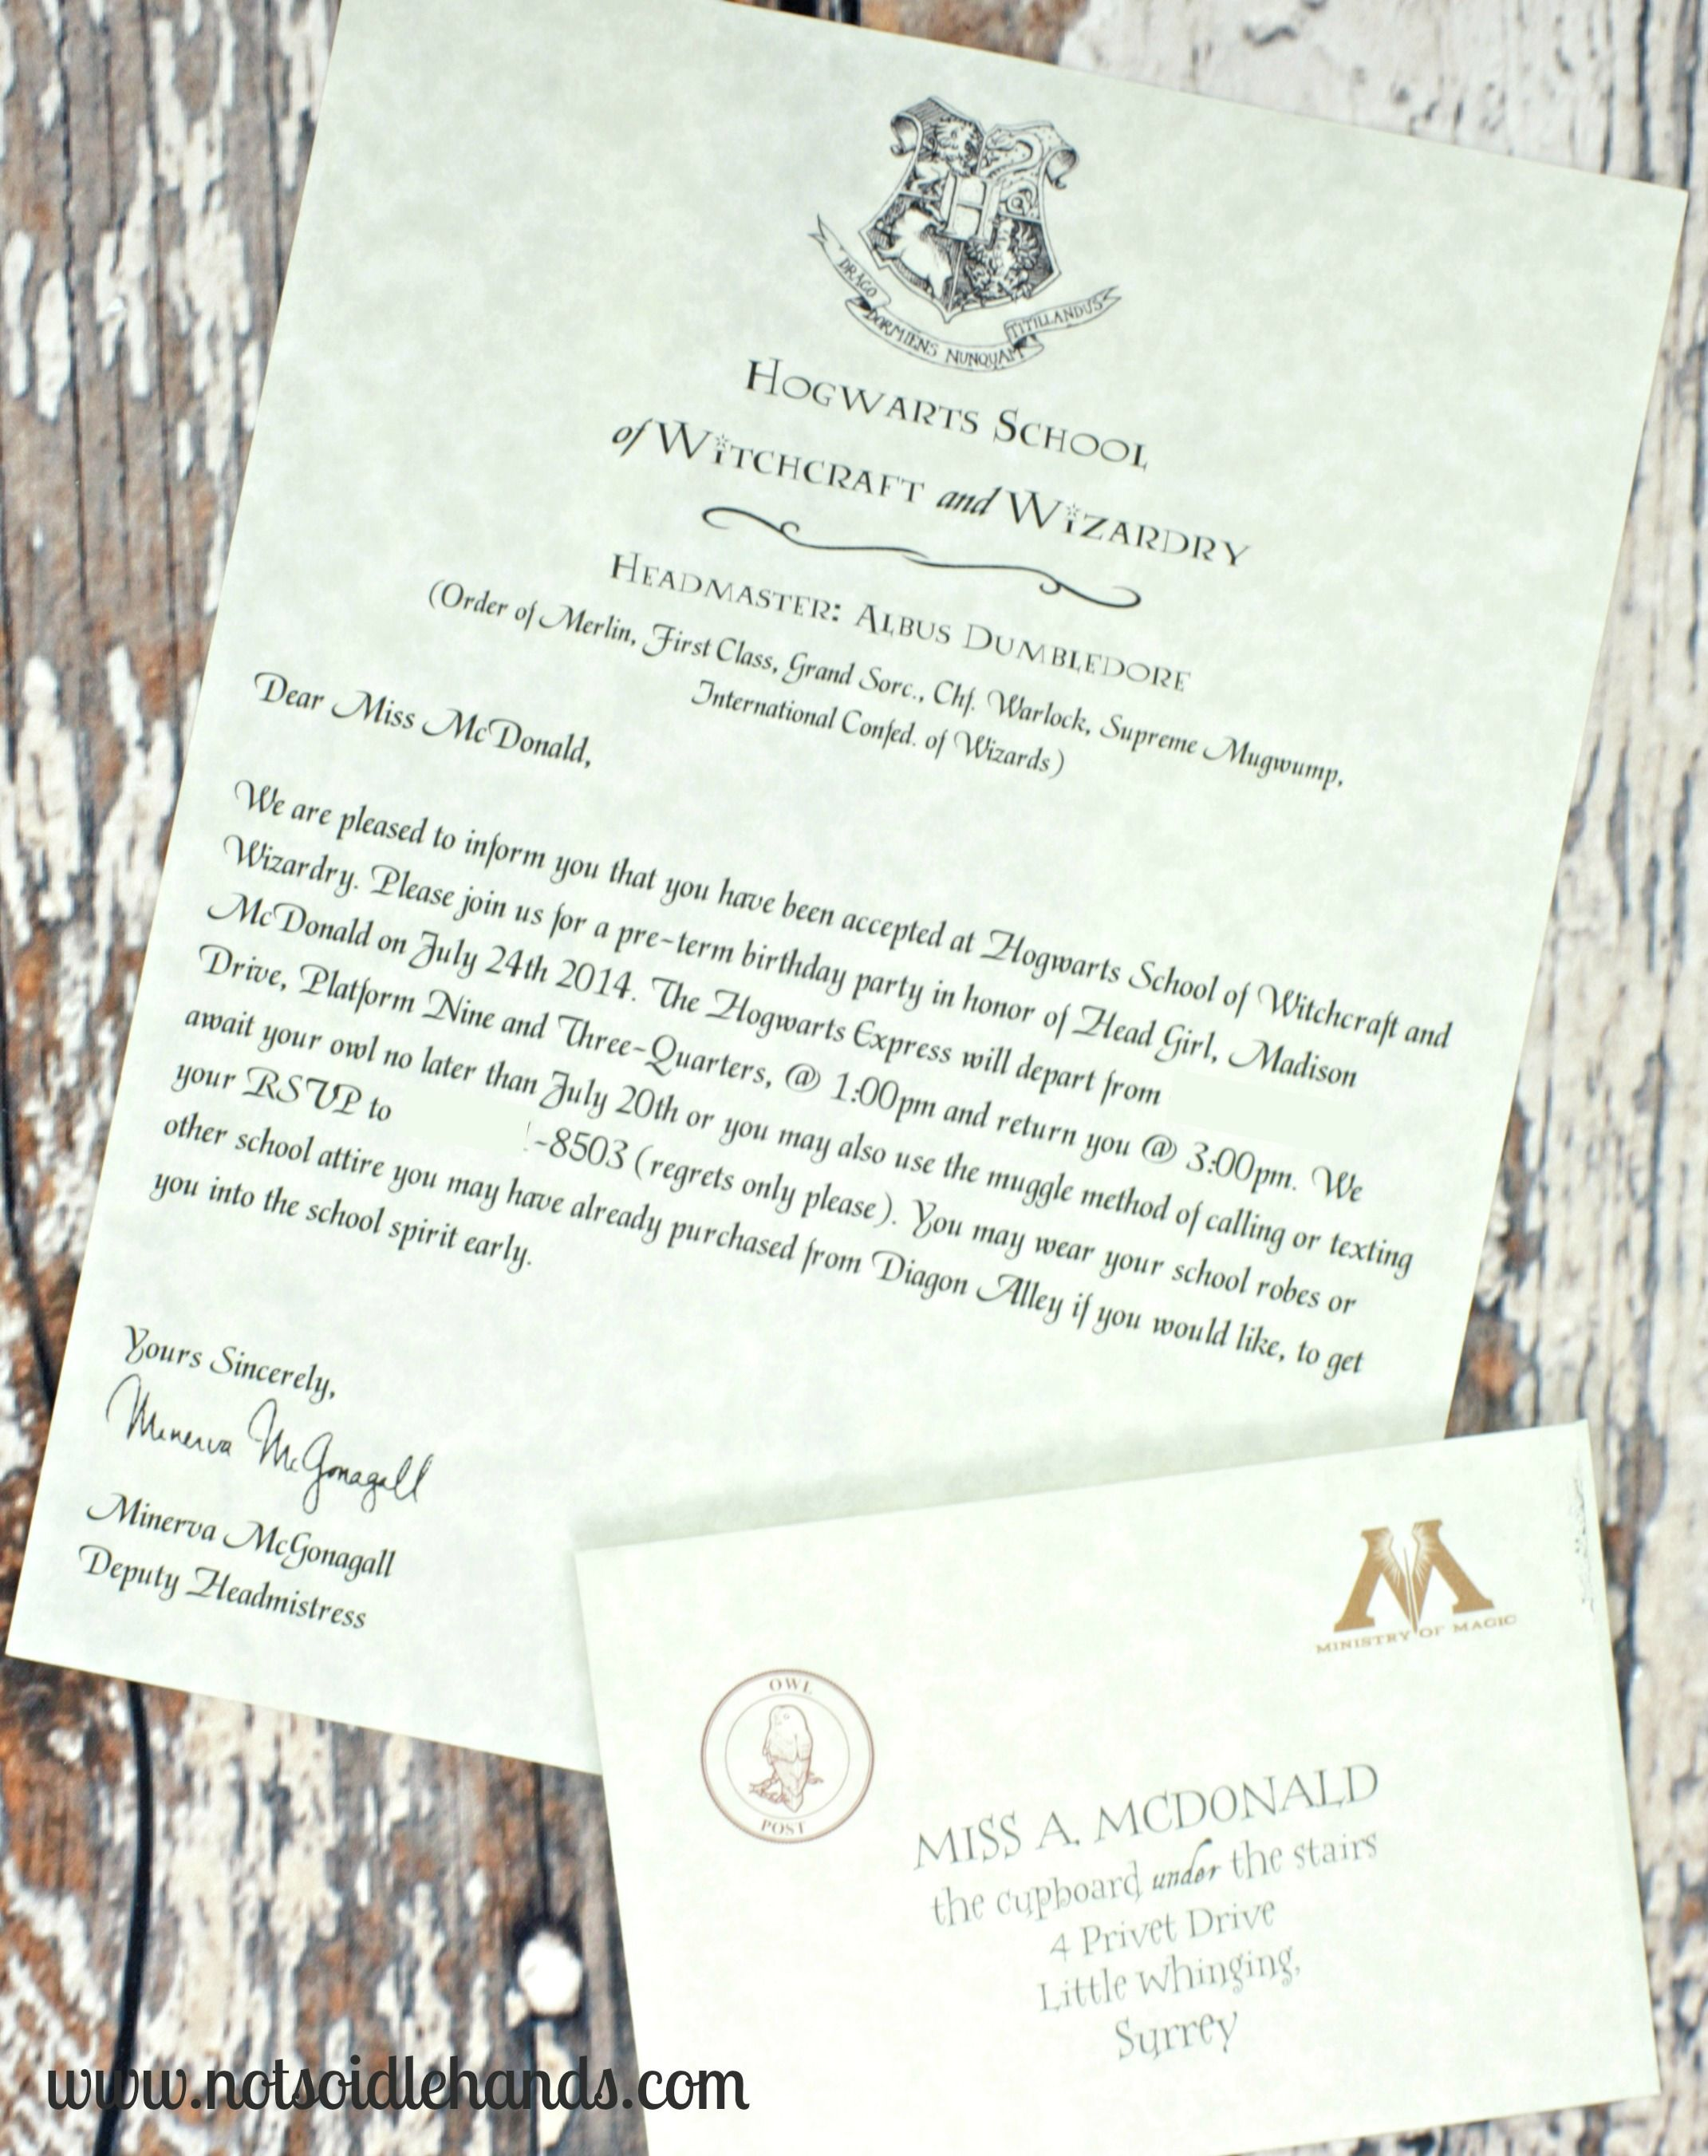 Harry potter birthday invitations and authentic acceptance letter harry potter birthday invitations and authentic acceptance letter and party part 1 notsoidlehands filmwisefo Image collections